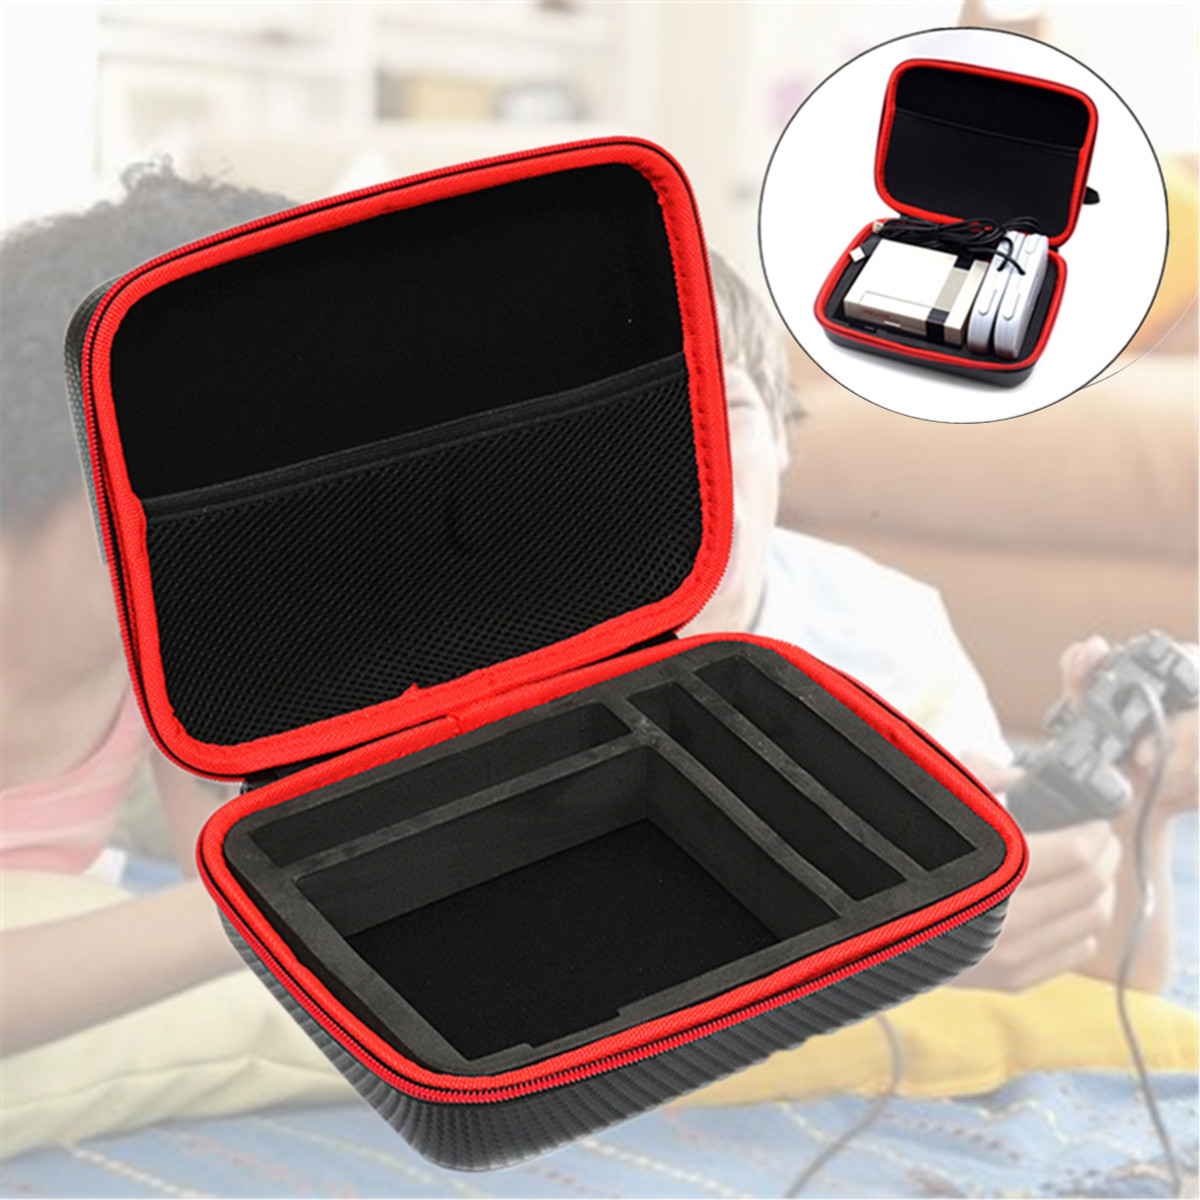 Portable Classical Bag Storage Box Cover Storage Box Carry Case Bag  For Raspberry Pi 3 2 B+ Case